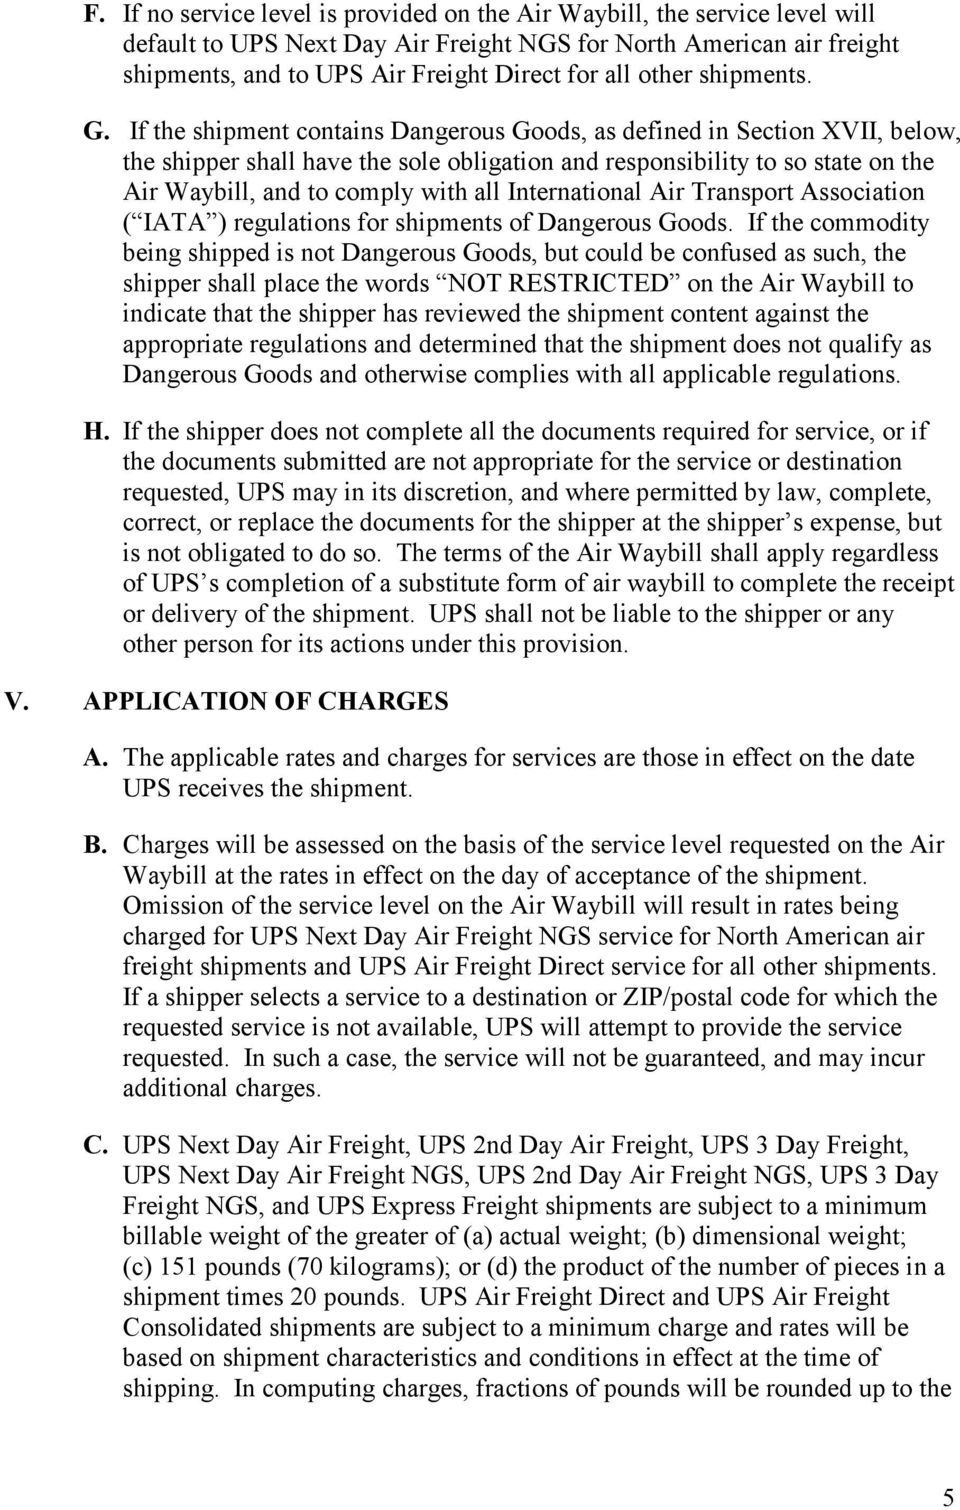 UPS AIR FREIGHT TERMS AND CONDITIONS OF CONTRACT ( TERMS ) FOR UPS